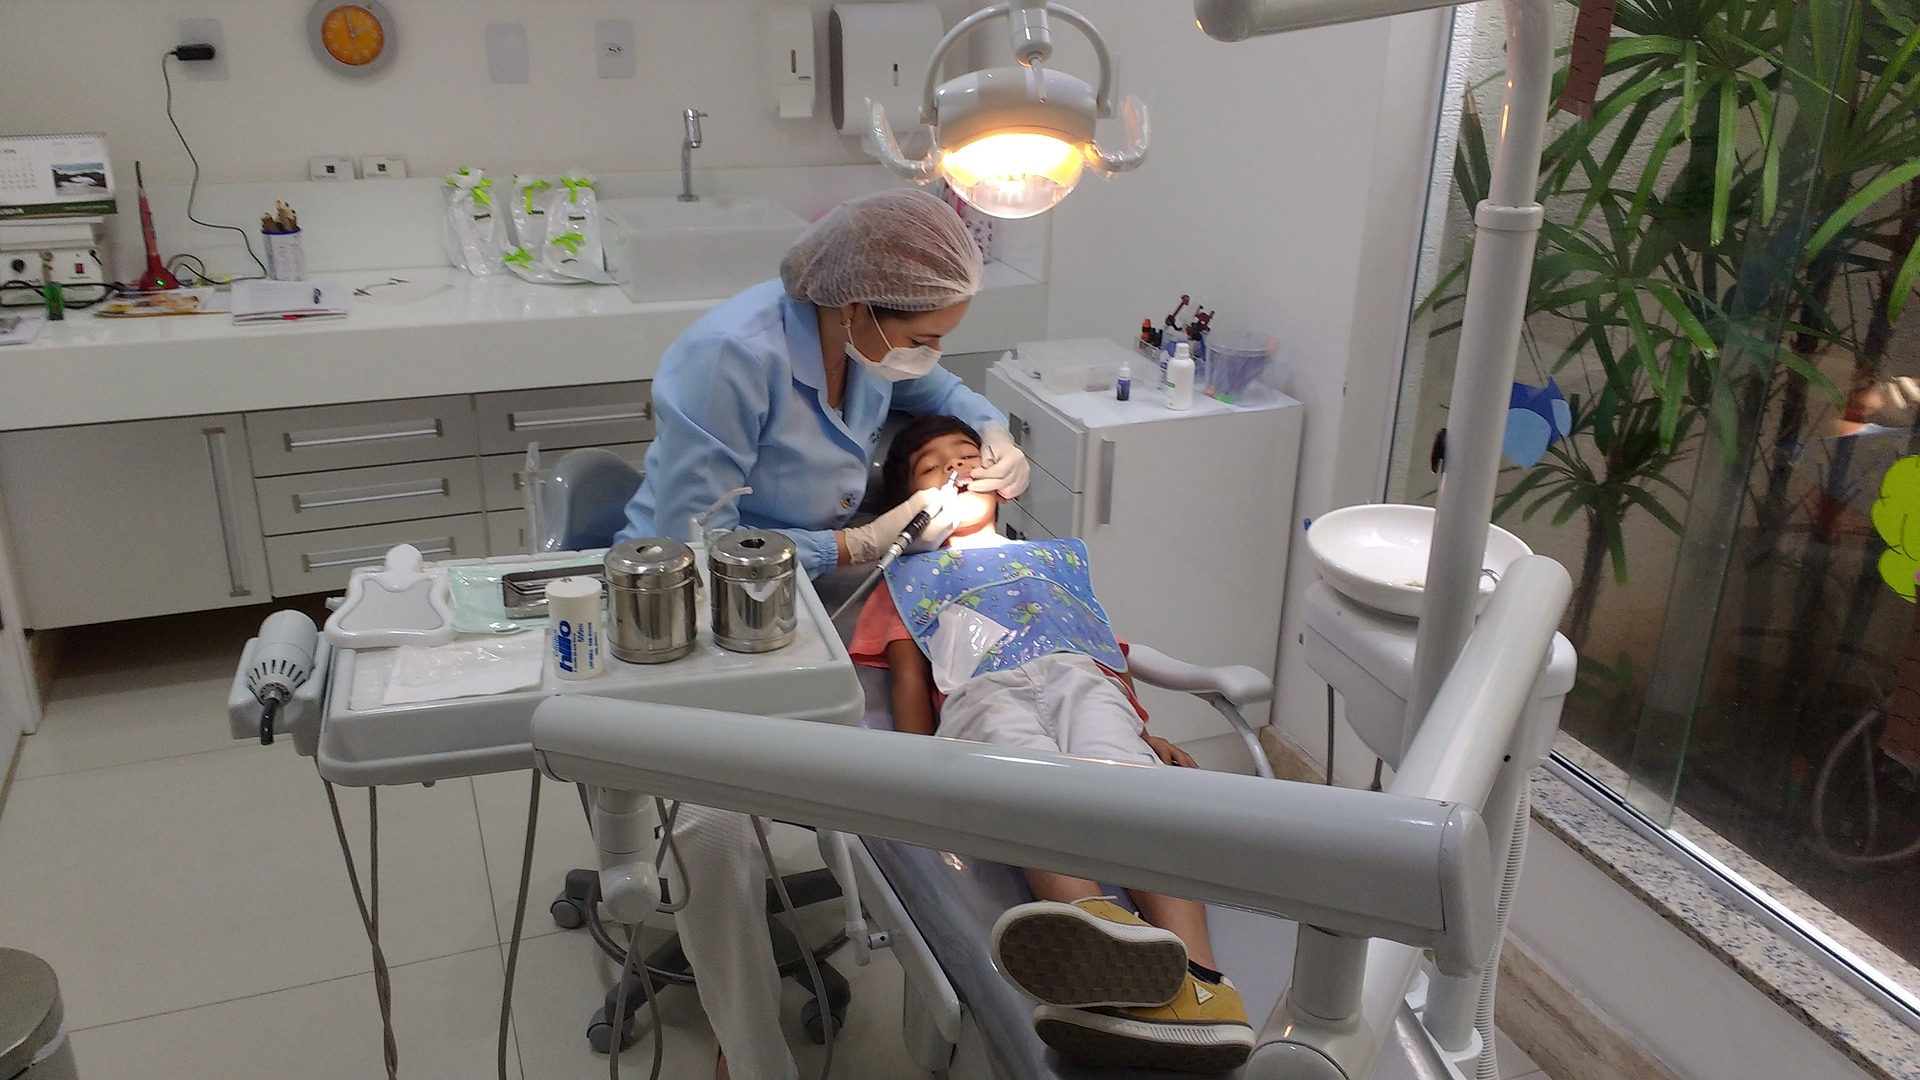 East Windsor Family Dentist They are here to serve YOU